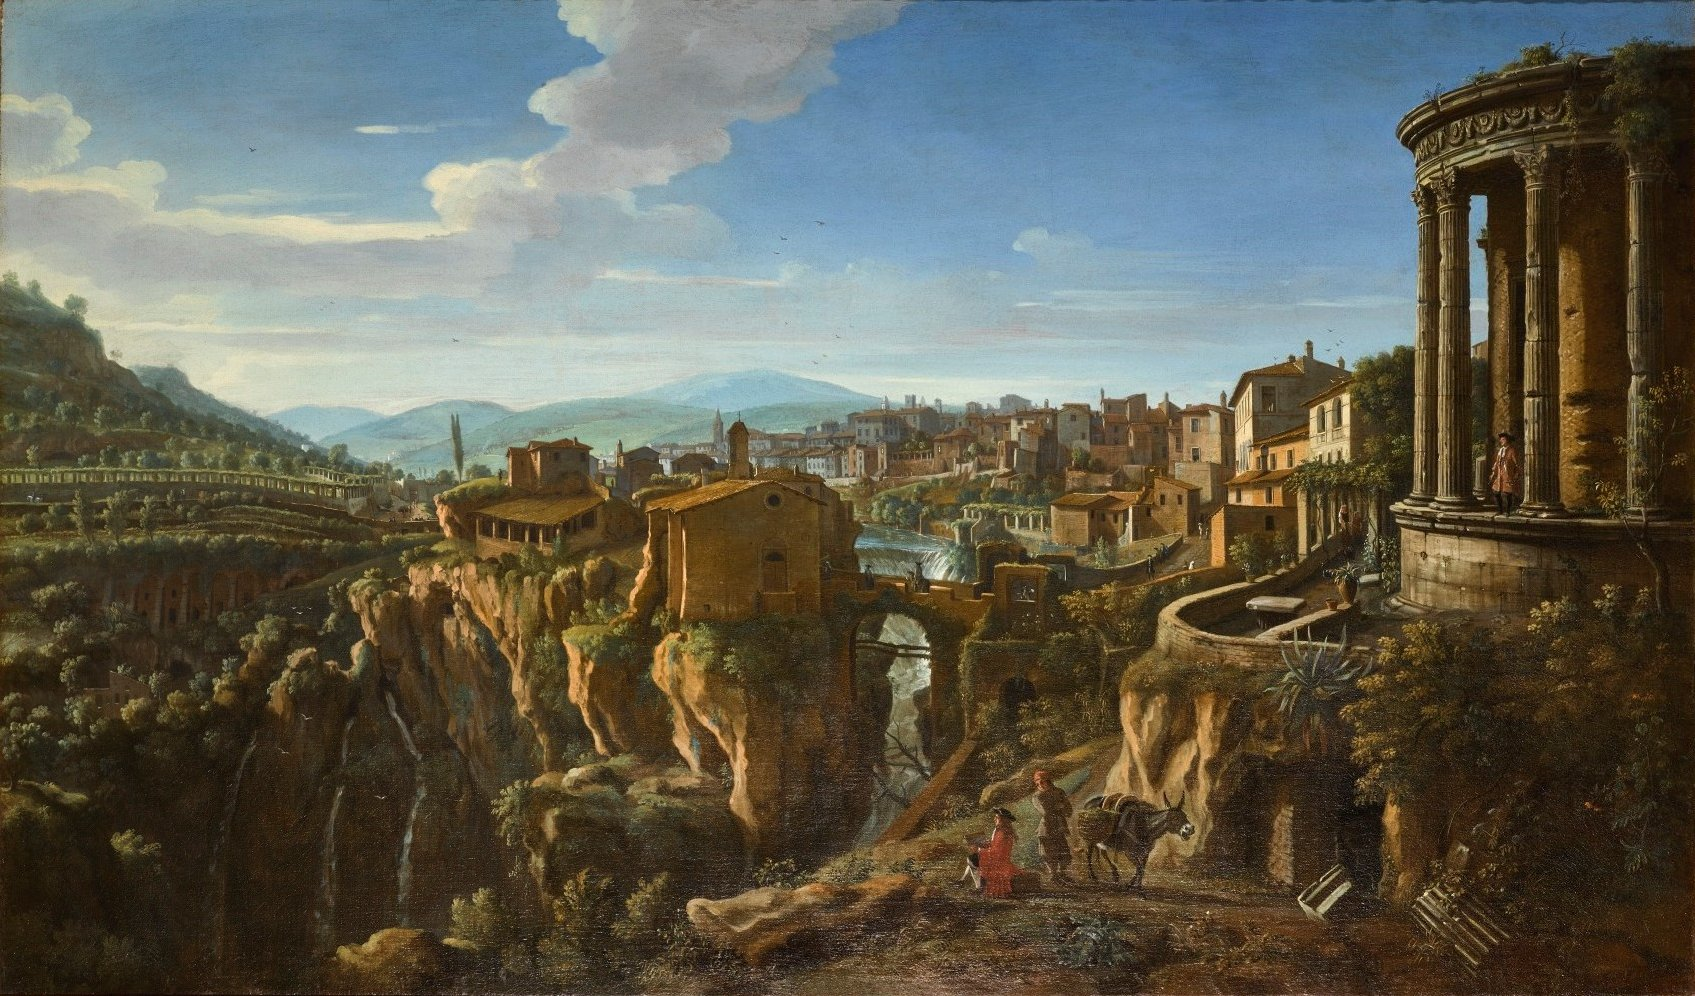 TIVOLI, A VIEW WITH THE TEMPLE OF VESTA AND THE BRIDGE OF SAN MARTINO by Gaspar van Wittel.jpg